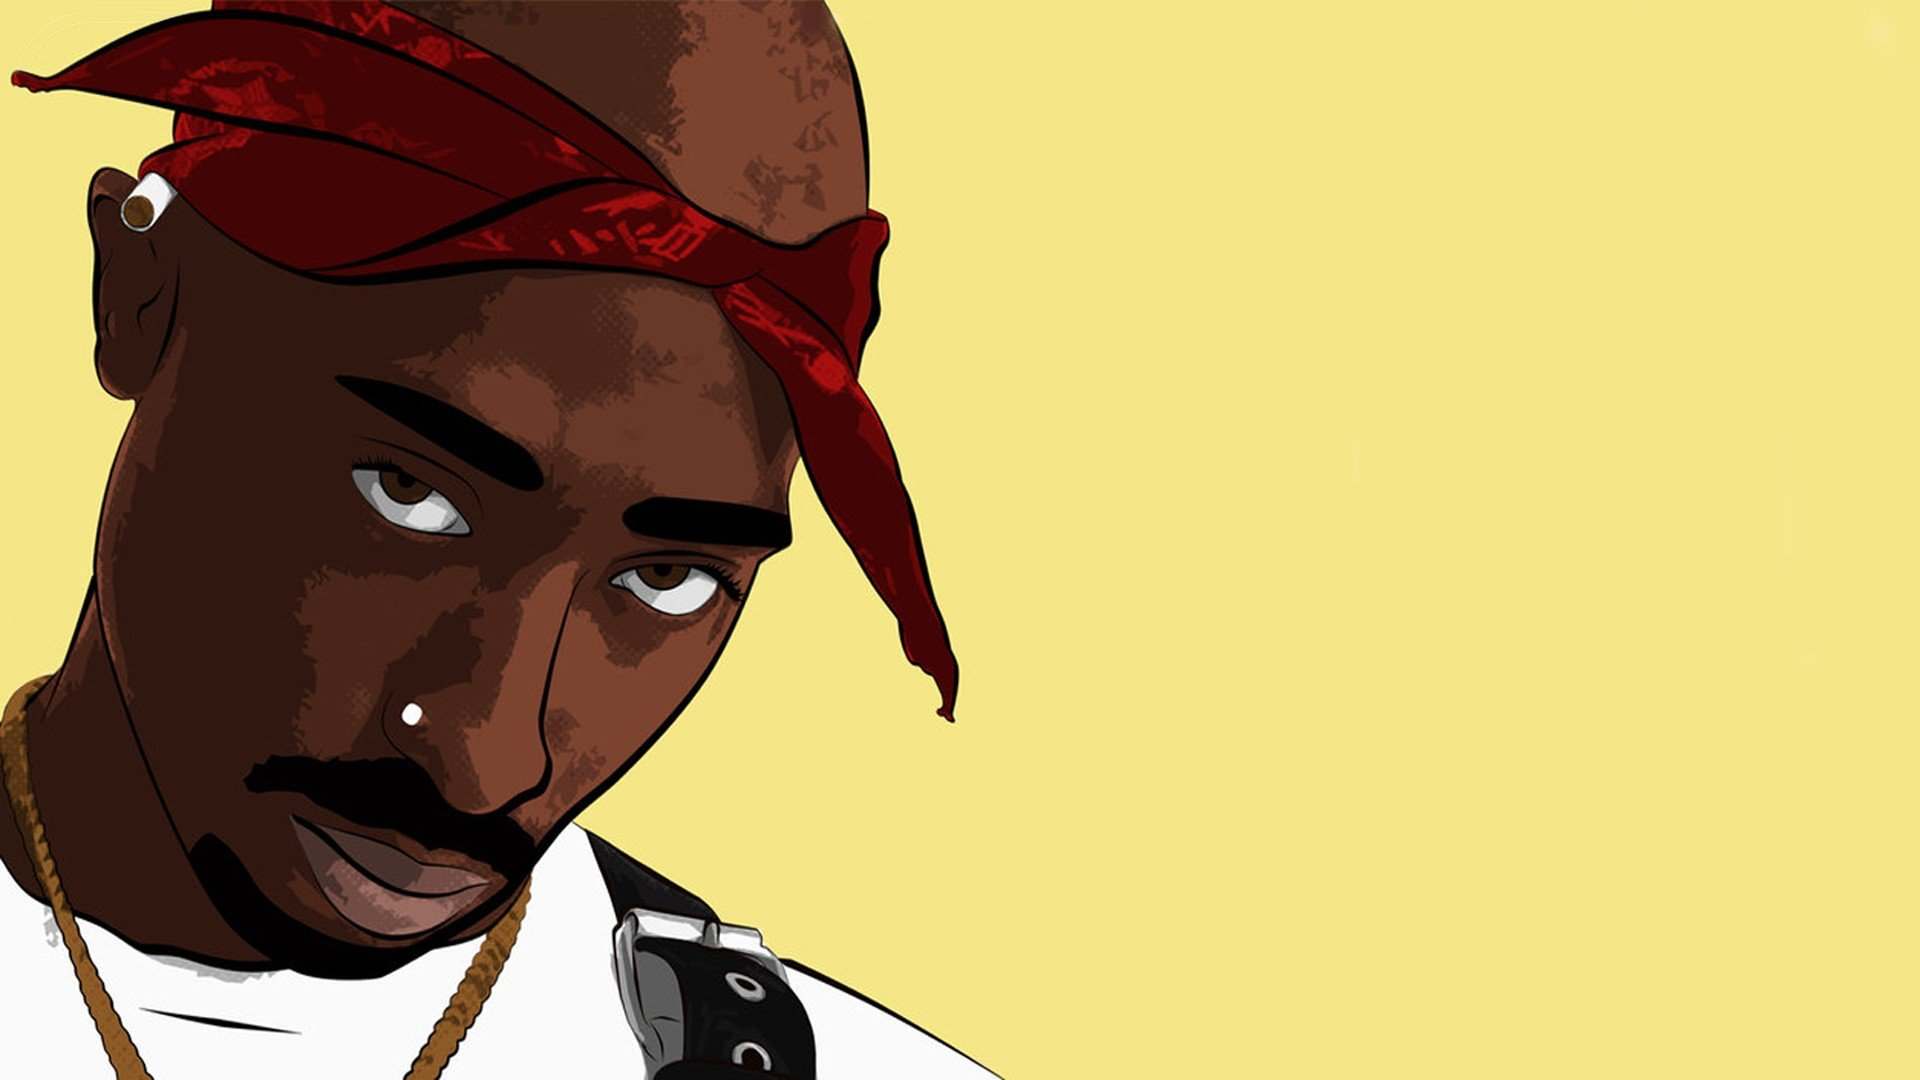 Free 2pac (tupac) high quality wallpaper ID:259123 for hd 1080p desktop